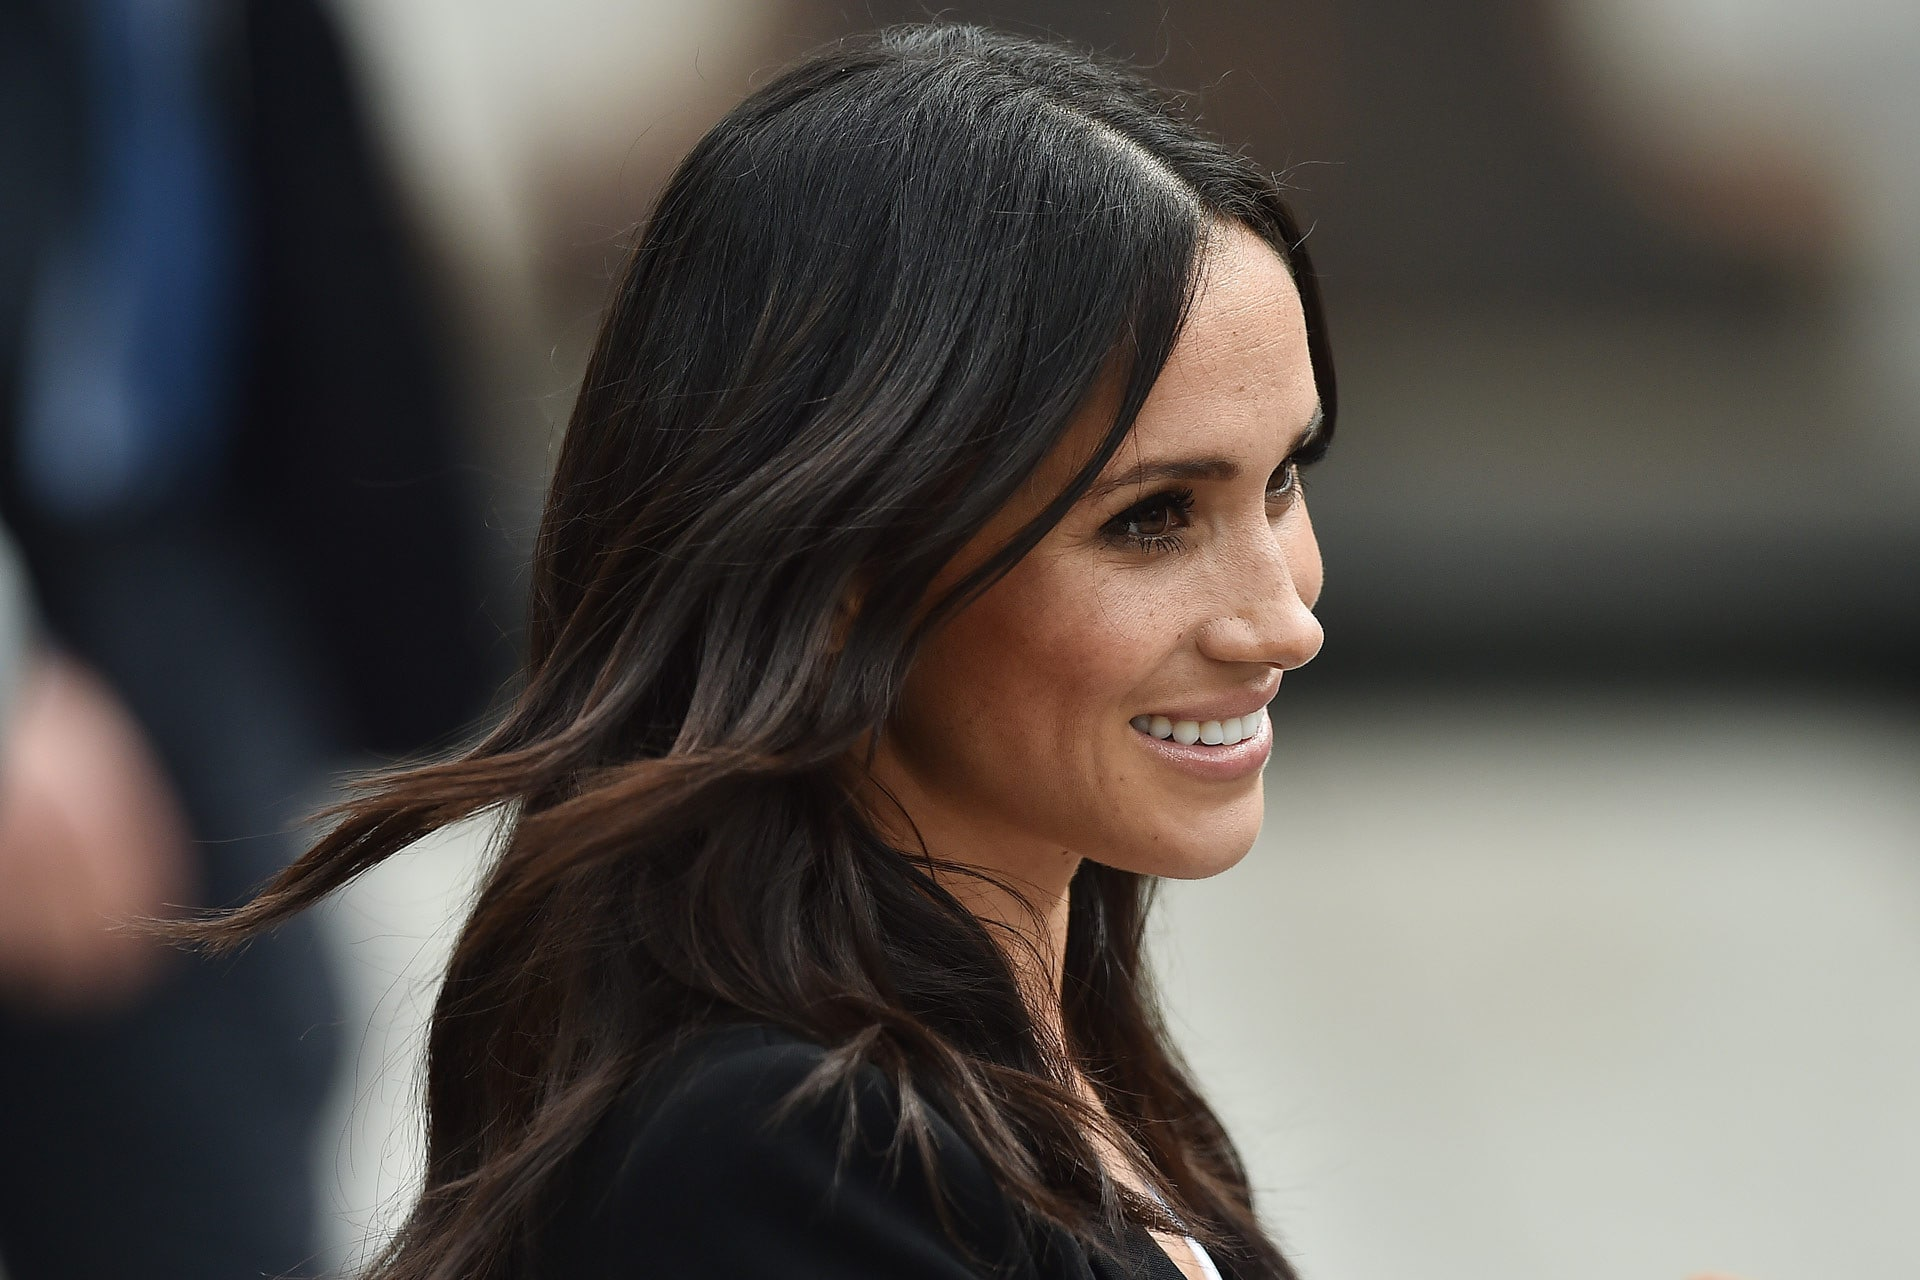 Meghan Markle just broke royal protocol again while on her tour of Ireland